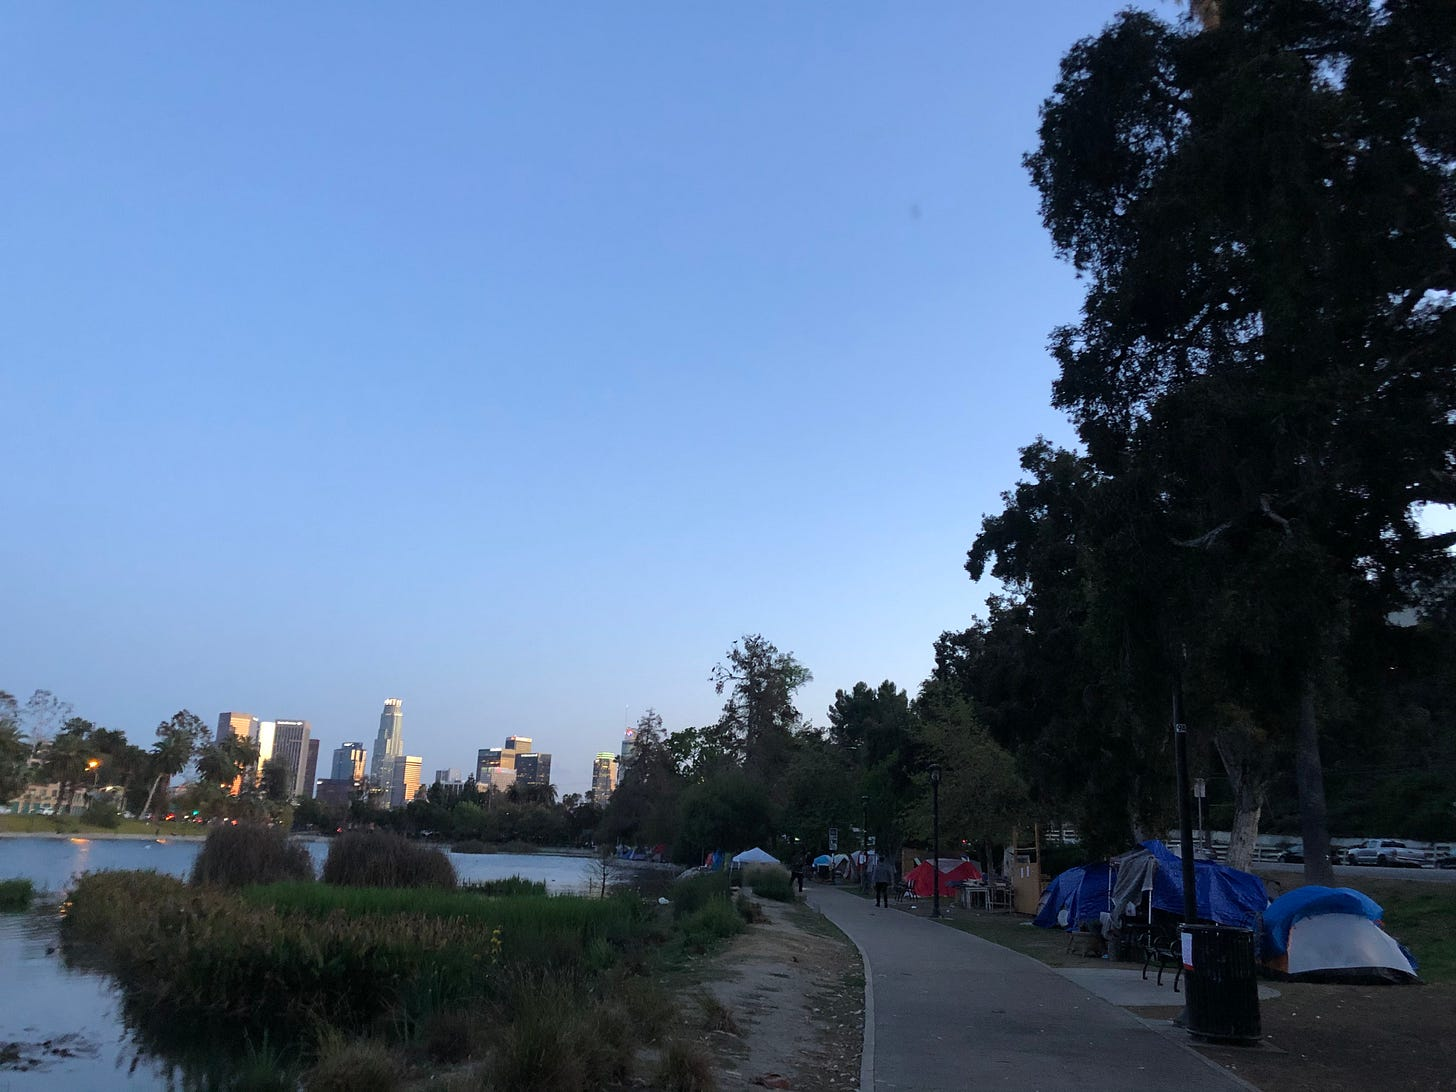 A view of a park lake in the foreground, skyscrapers in the background, and a line of tent shelters on the right.